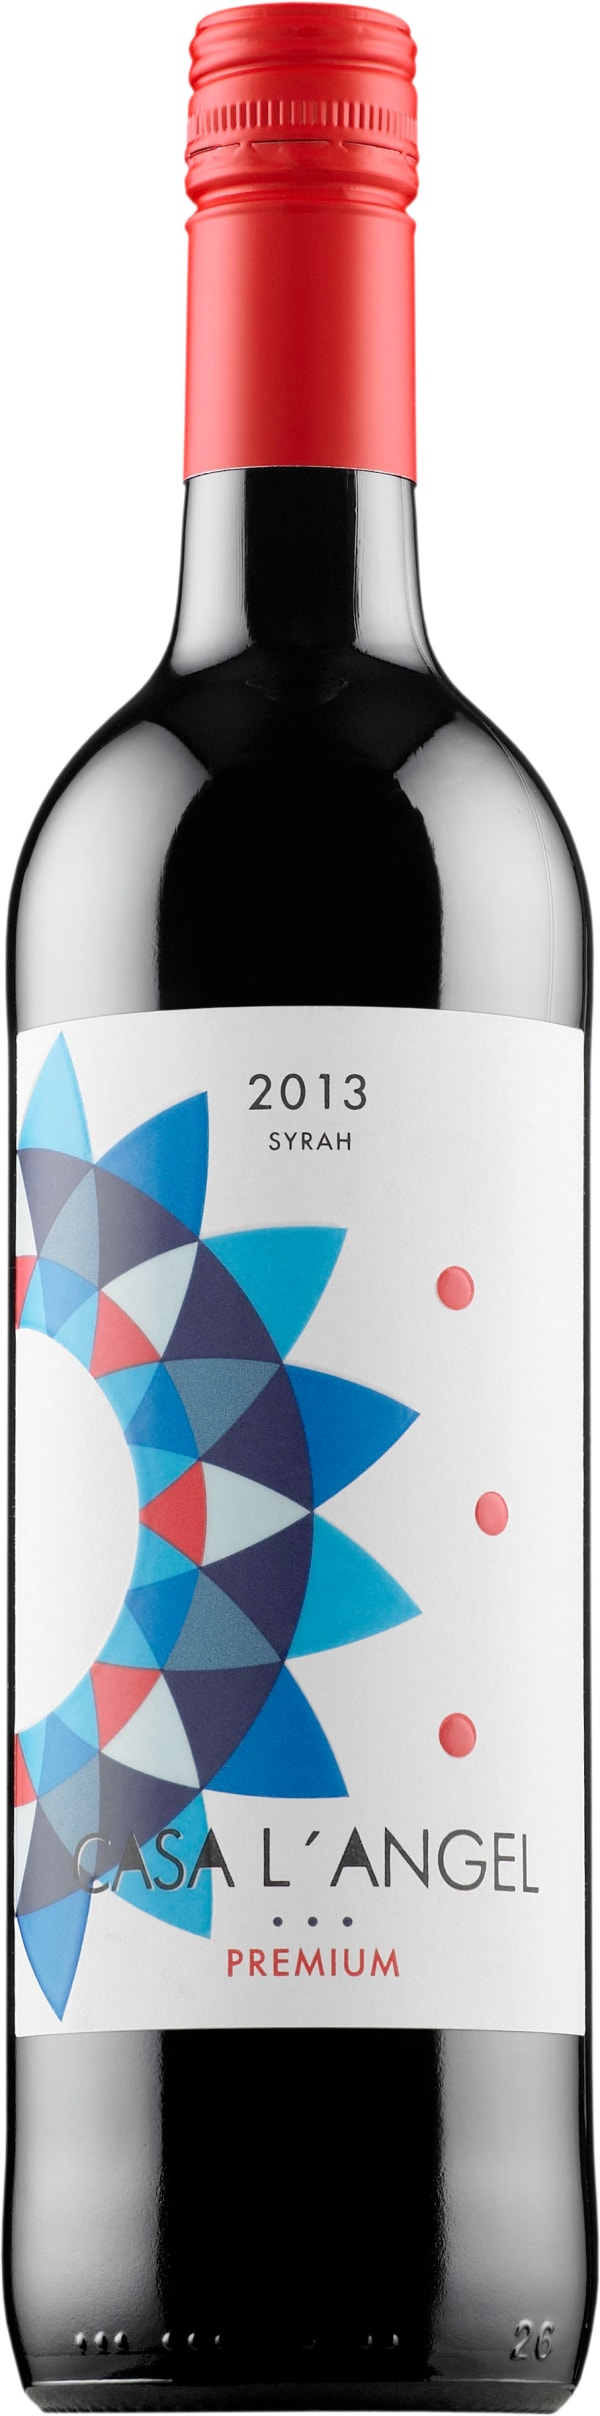 Casa l'Angel Syrah 2017